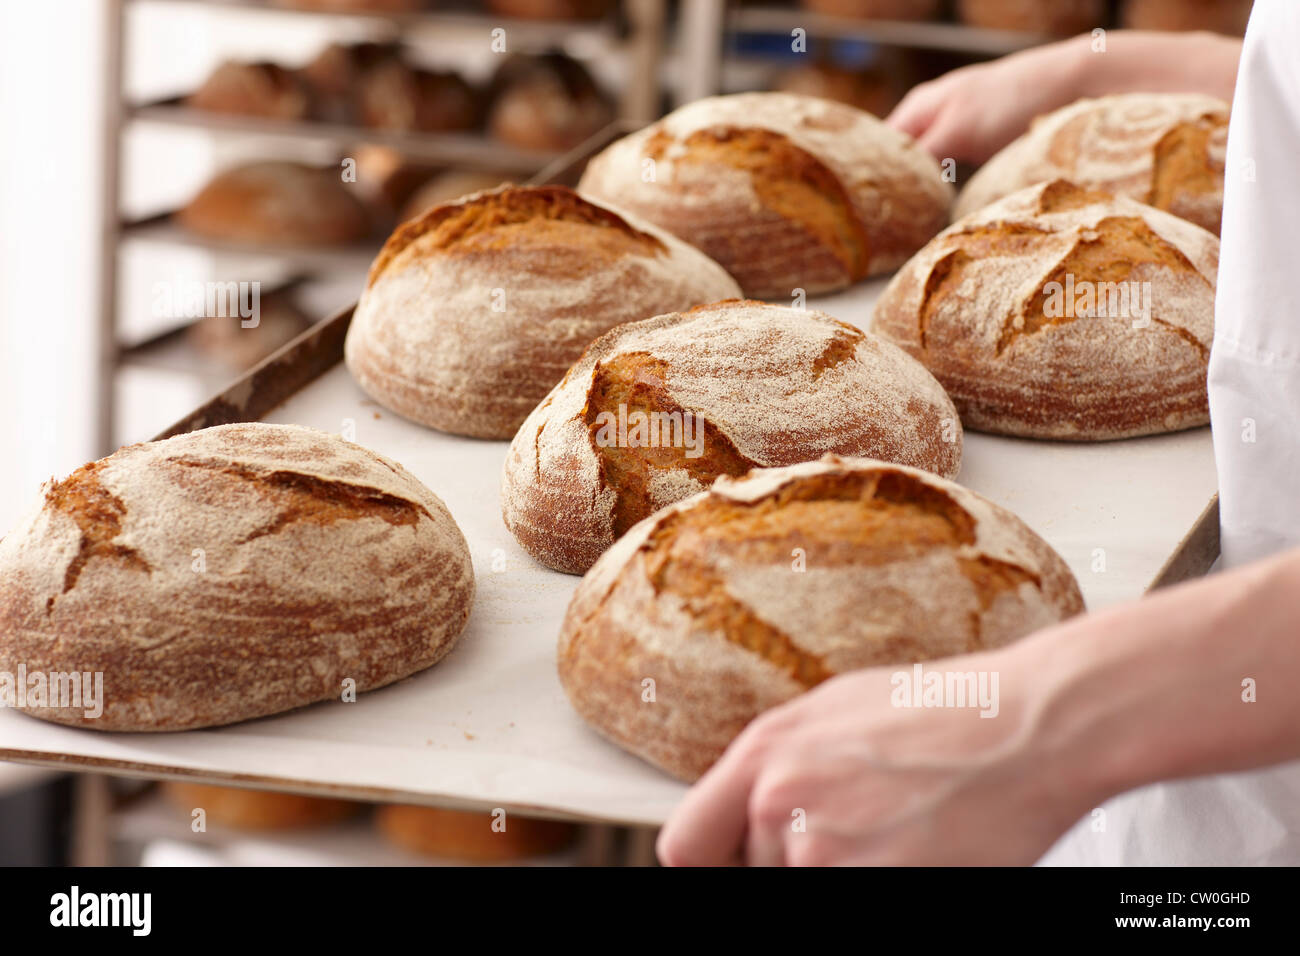 Chef carrying tray of bread in kitchen - Stock Image